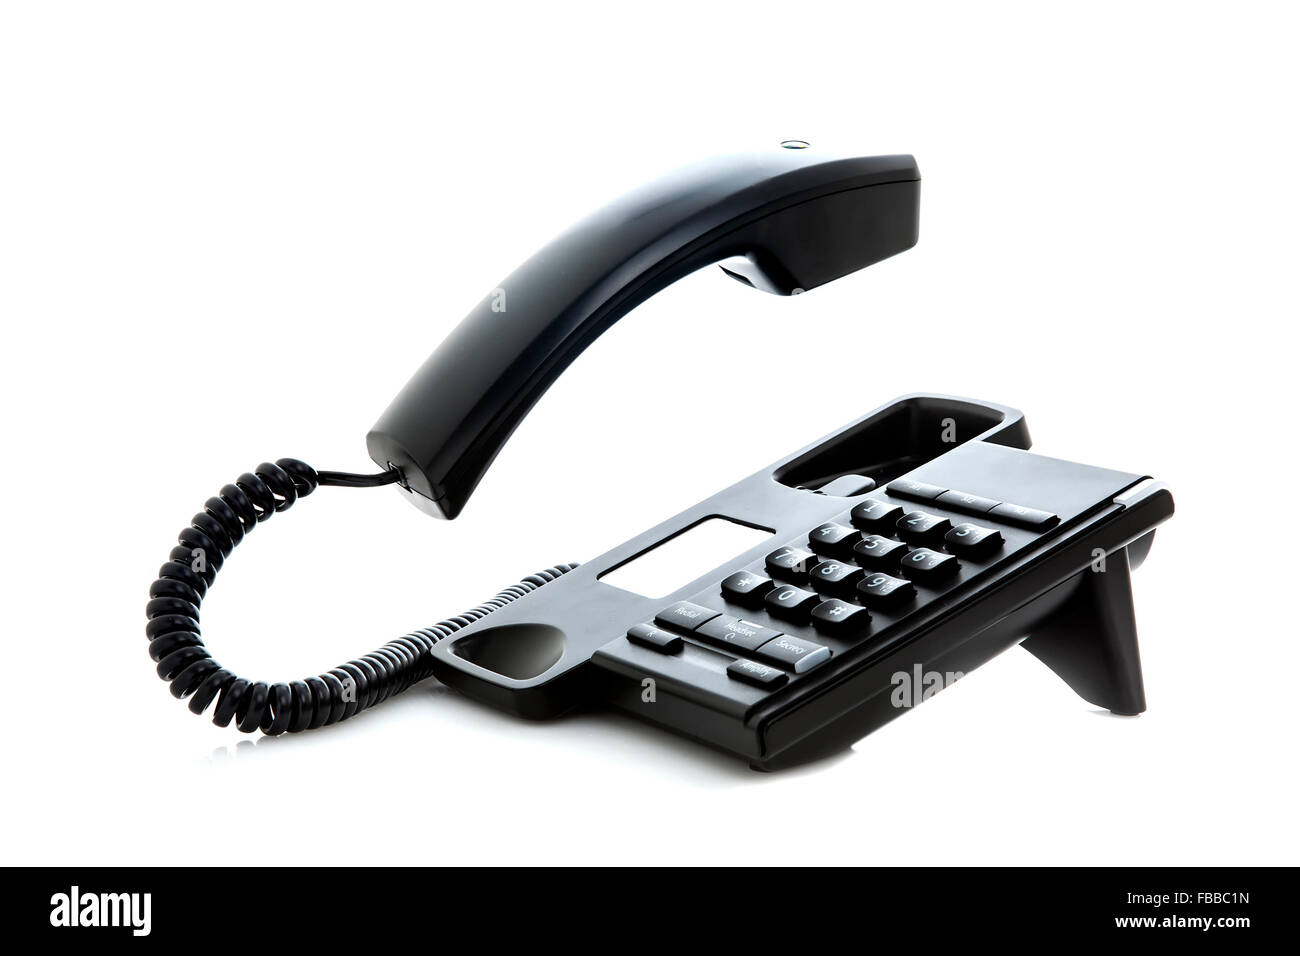 Black phone with floating handset - Stock Image